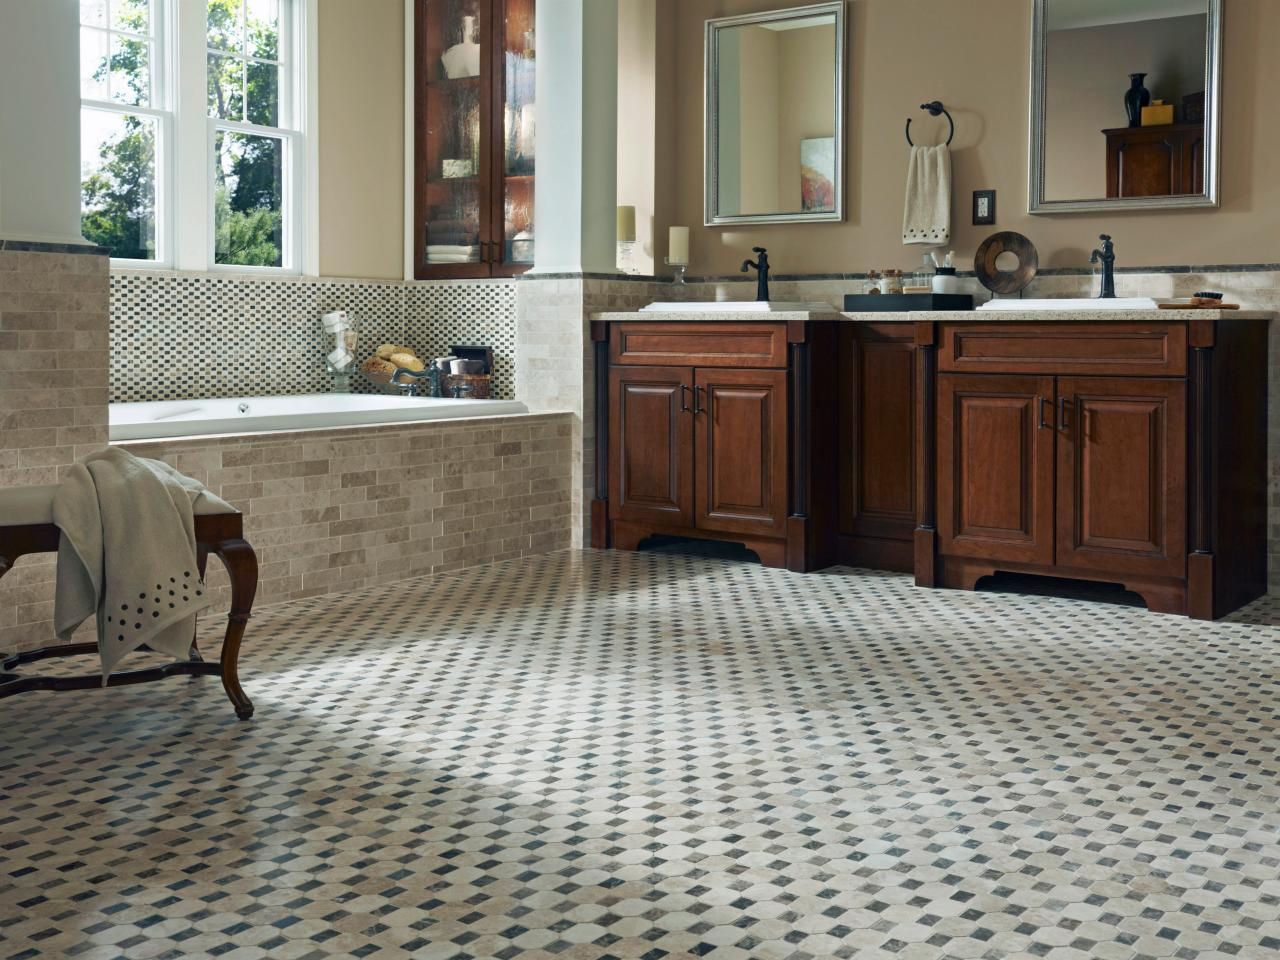 CI_AlysEdwards_mosaic-bathroom-tile-flooring_h.jpg.rend.hgtvcom.1280.960